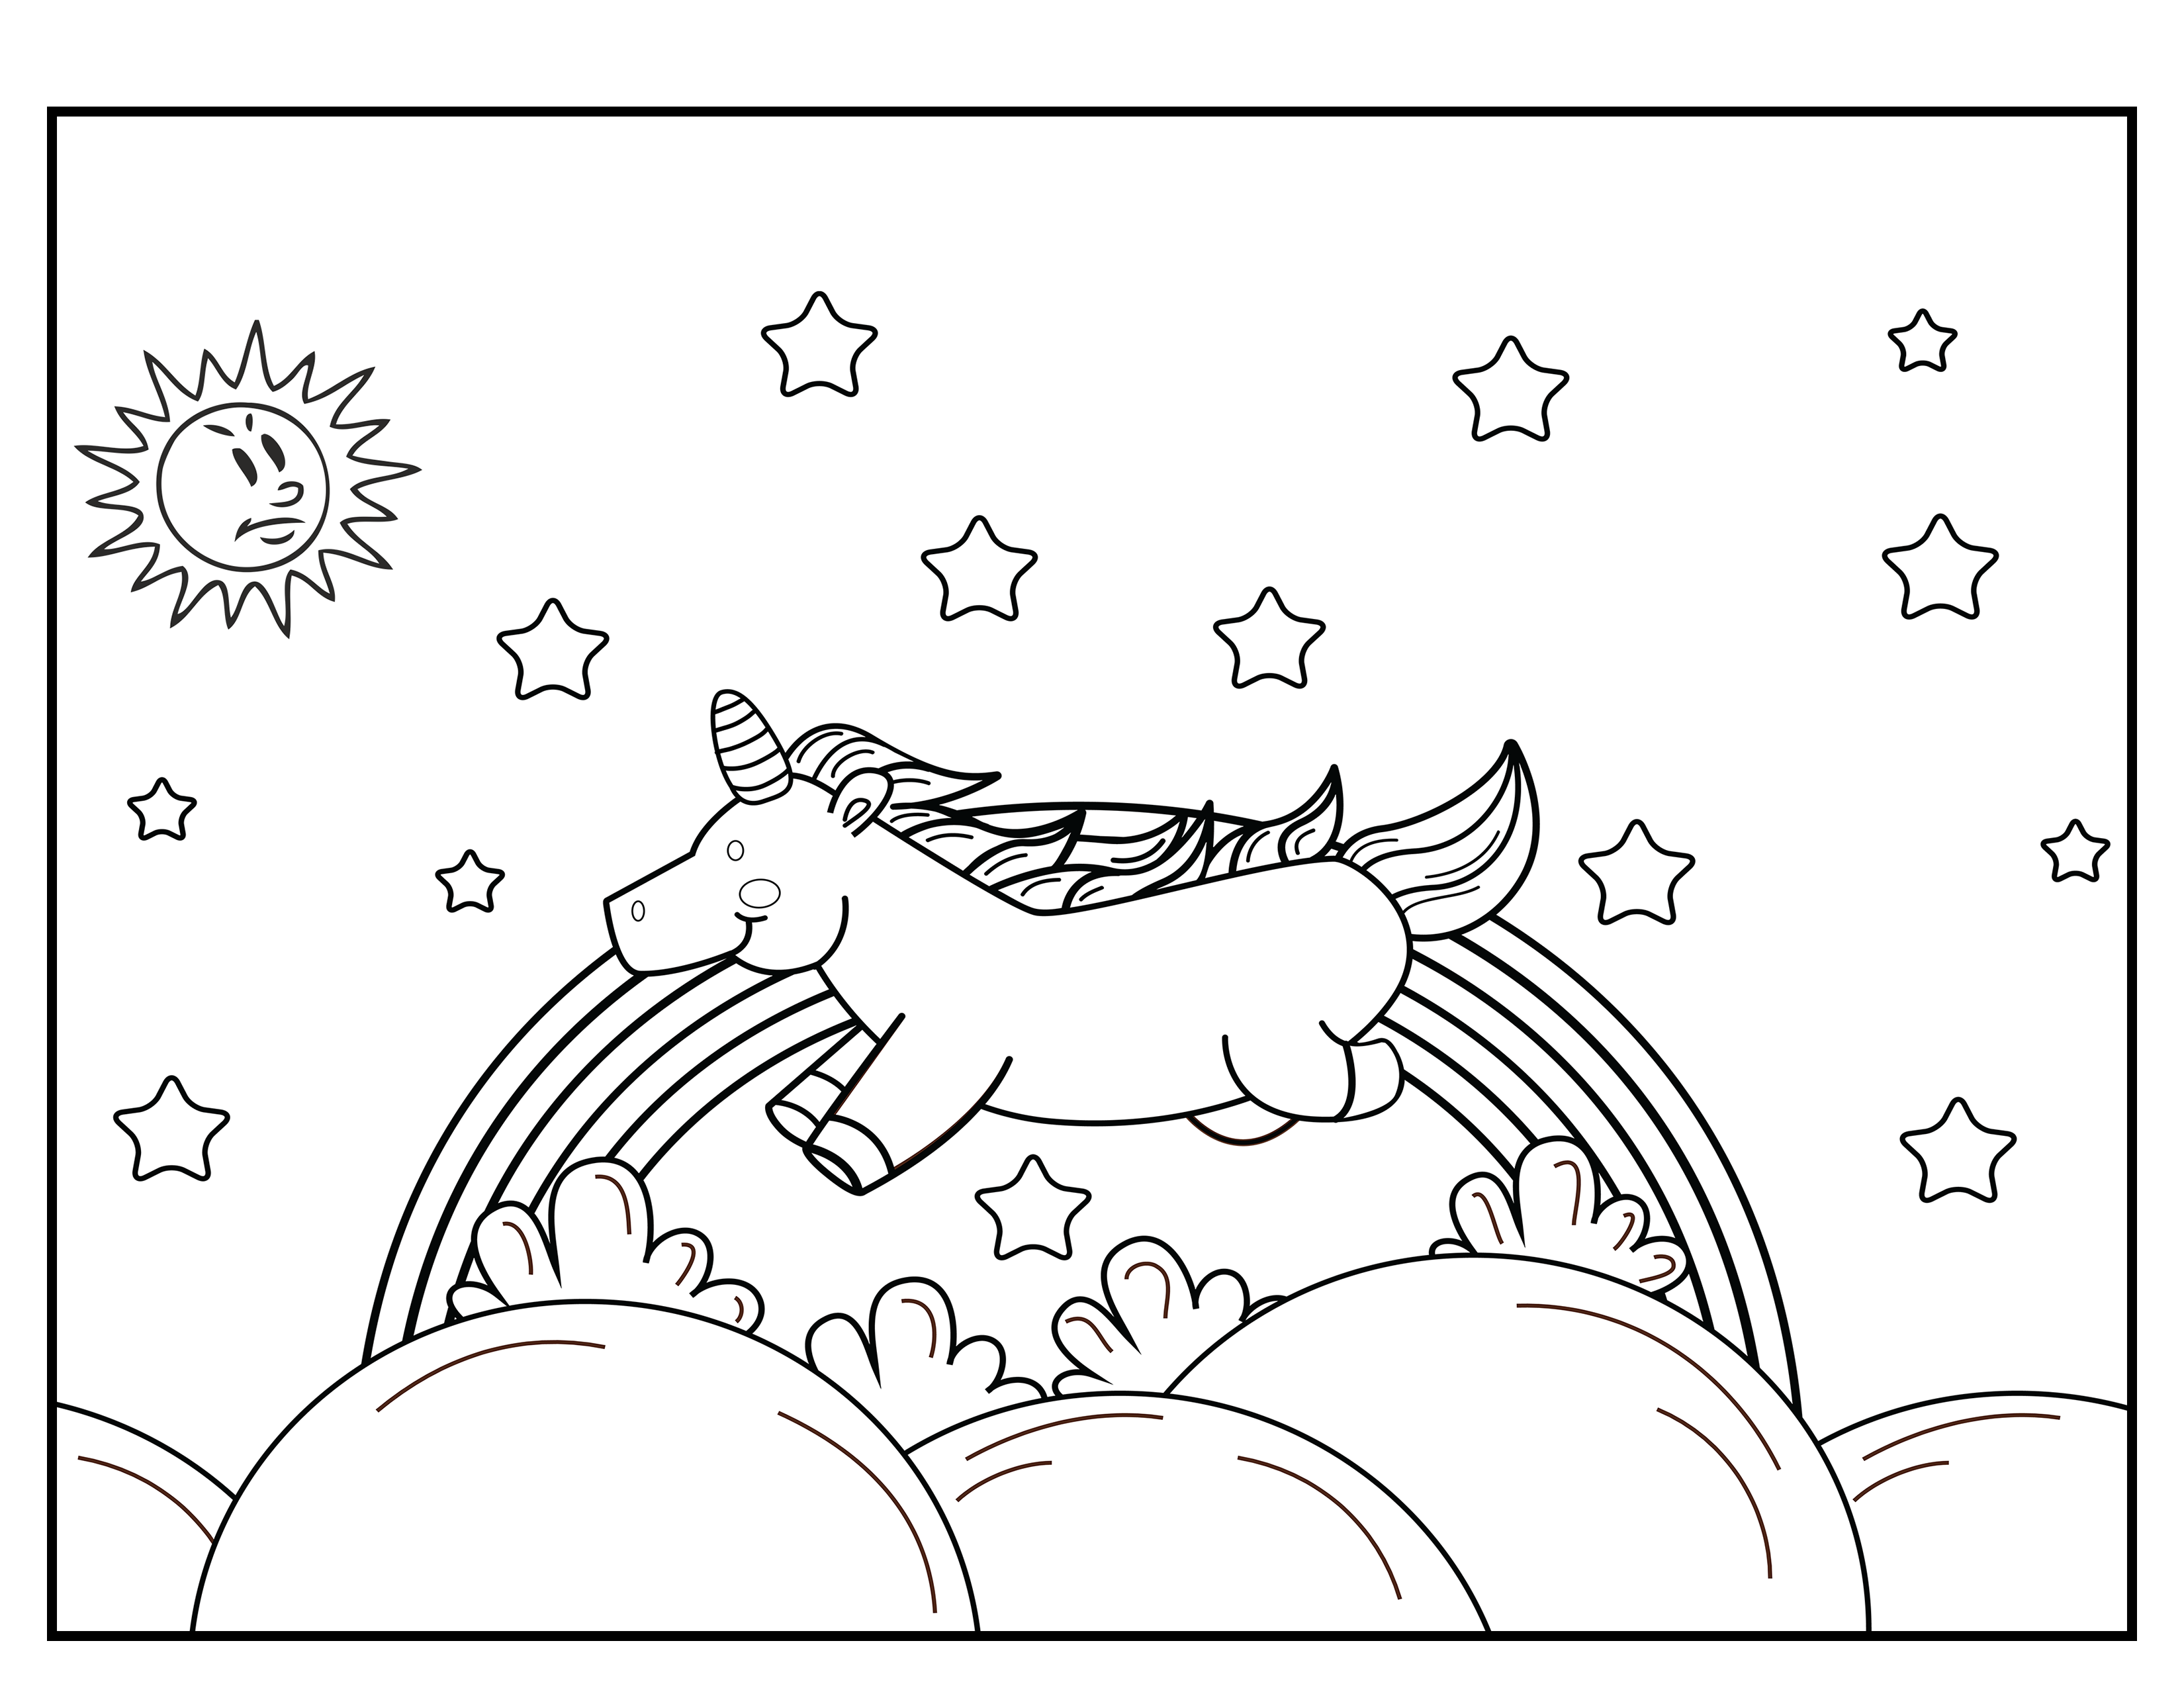 Carefree Unicorn Running Through The Clouds Coloring Book